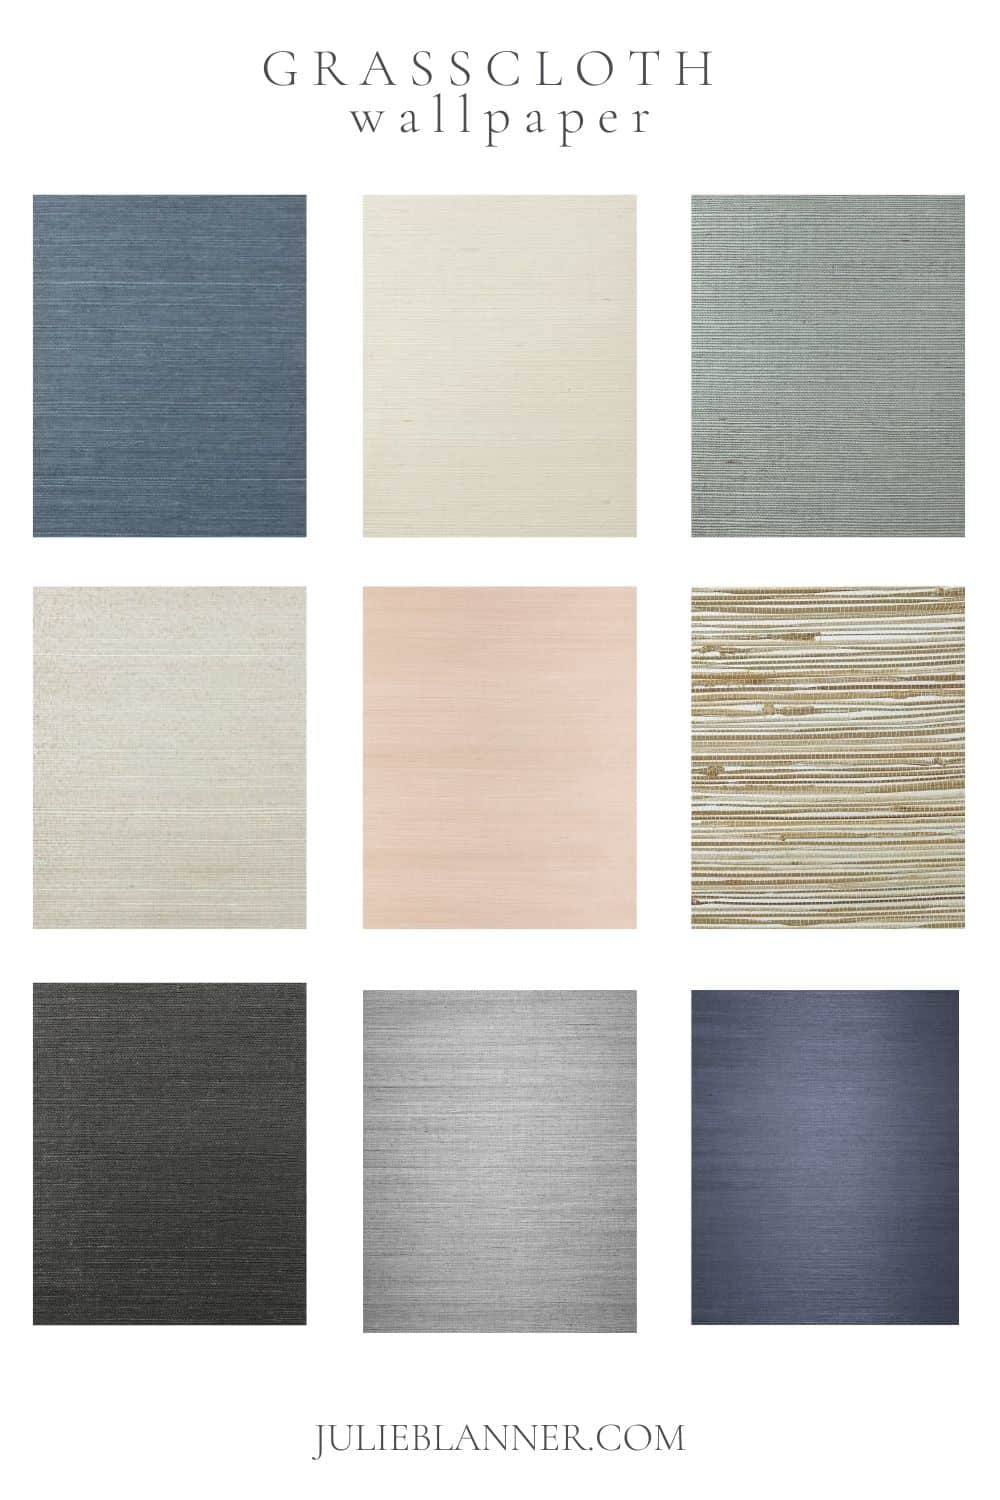 A collage of grasscloth Serena and Lily wallpapers, with text at the top that reads Grasscloth Wallpaper.